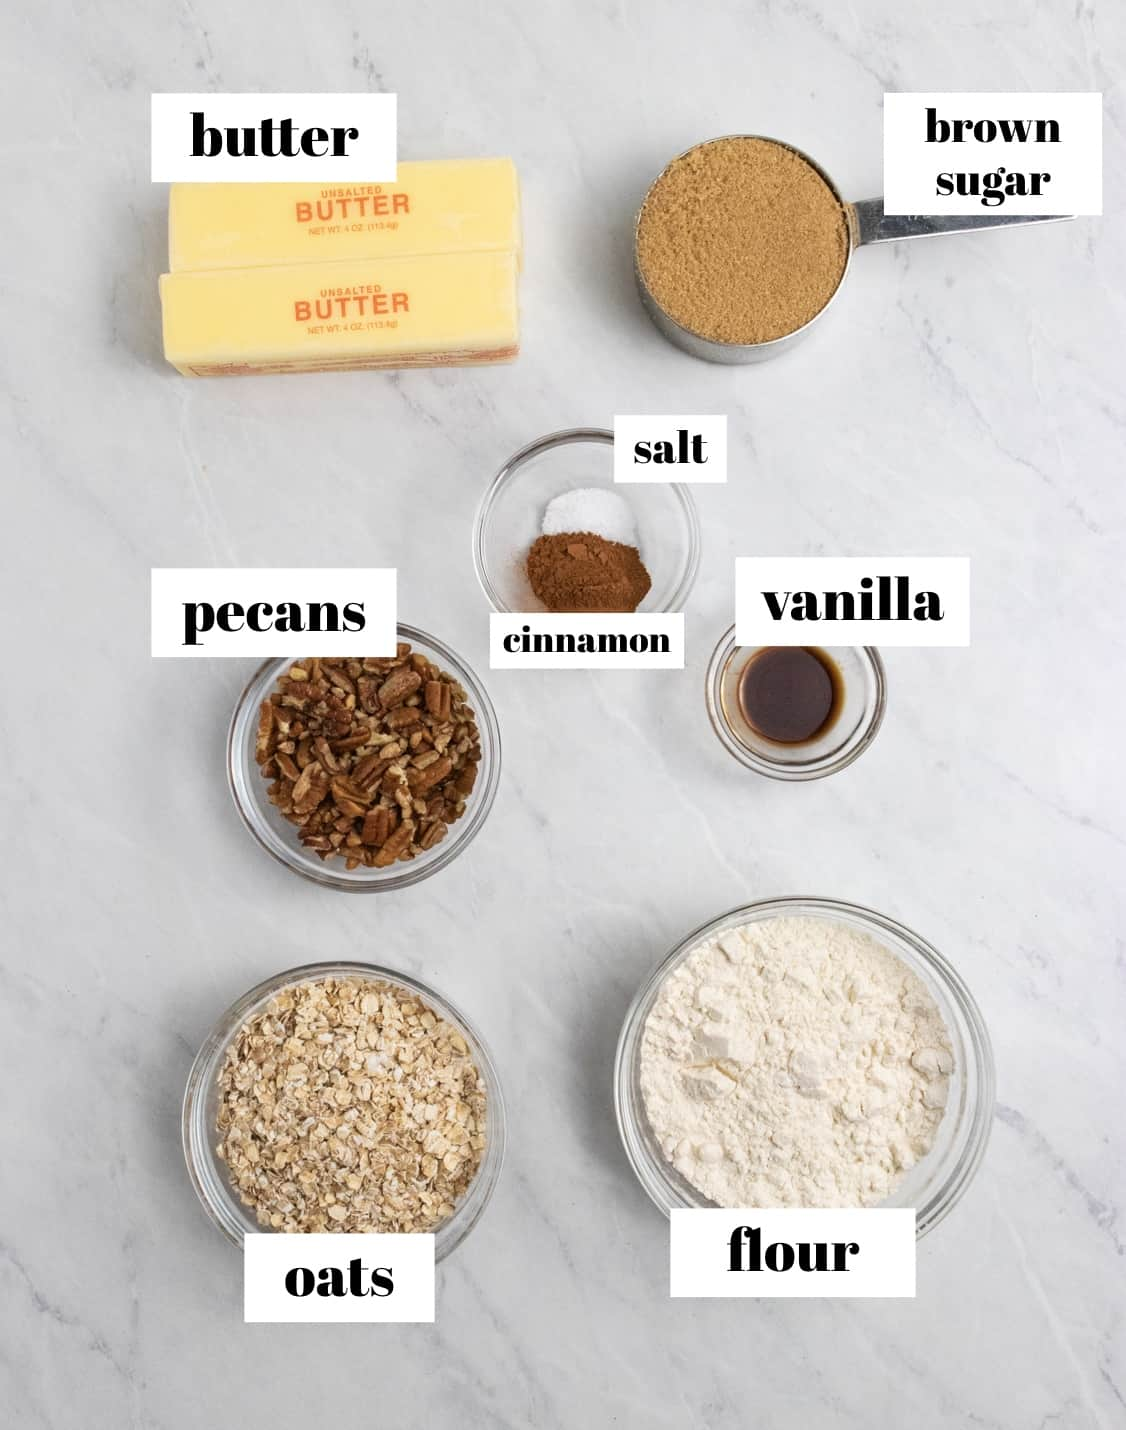 Oats, brown sugar, butter and other ingredients labeled on counter.